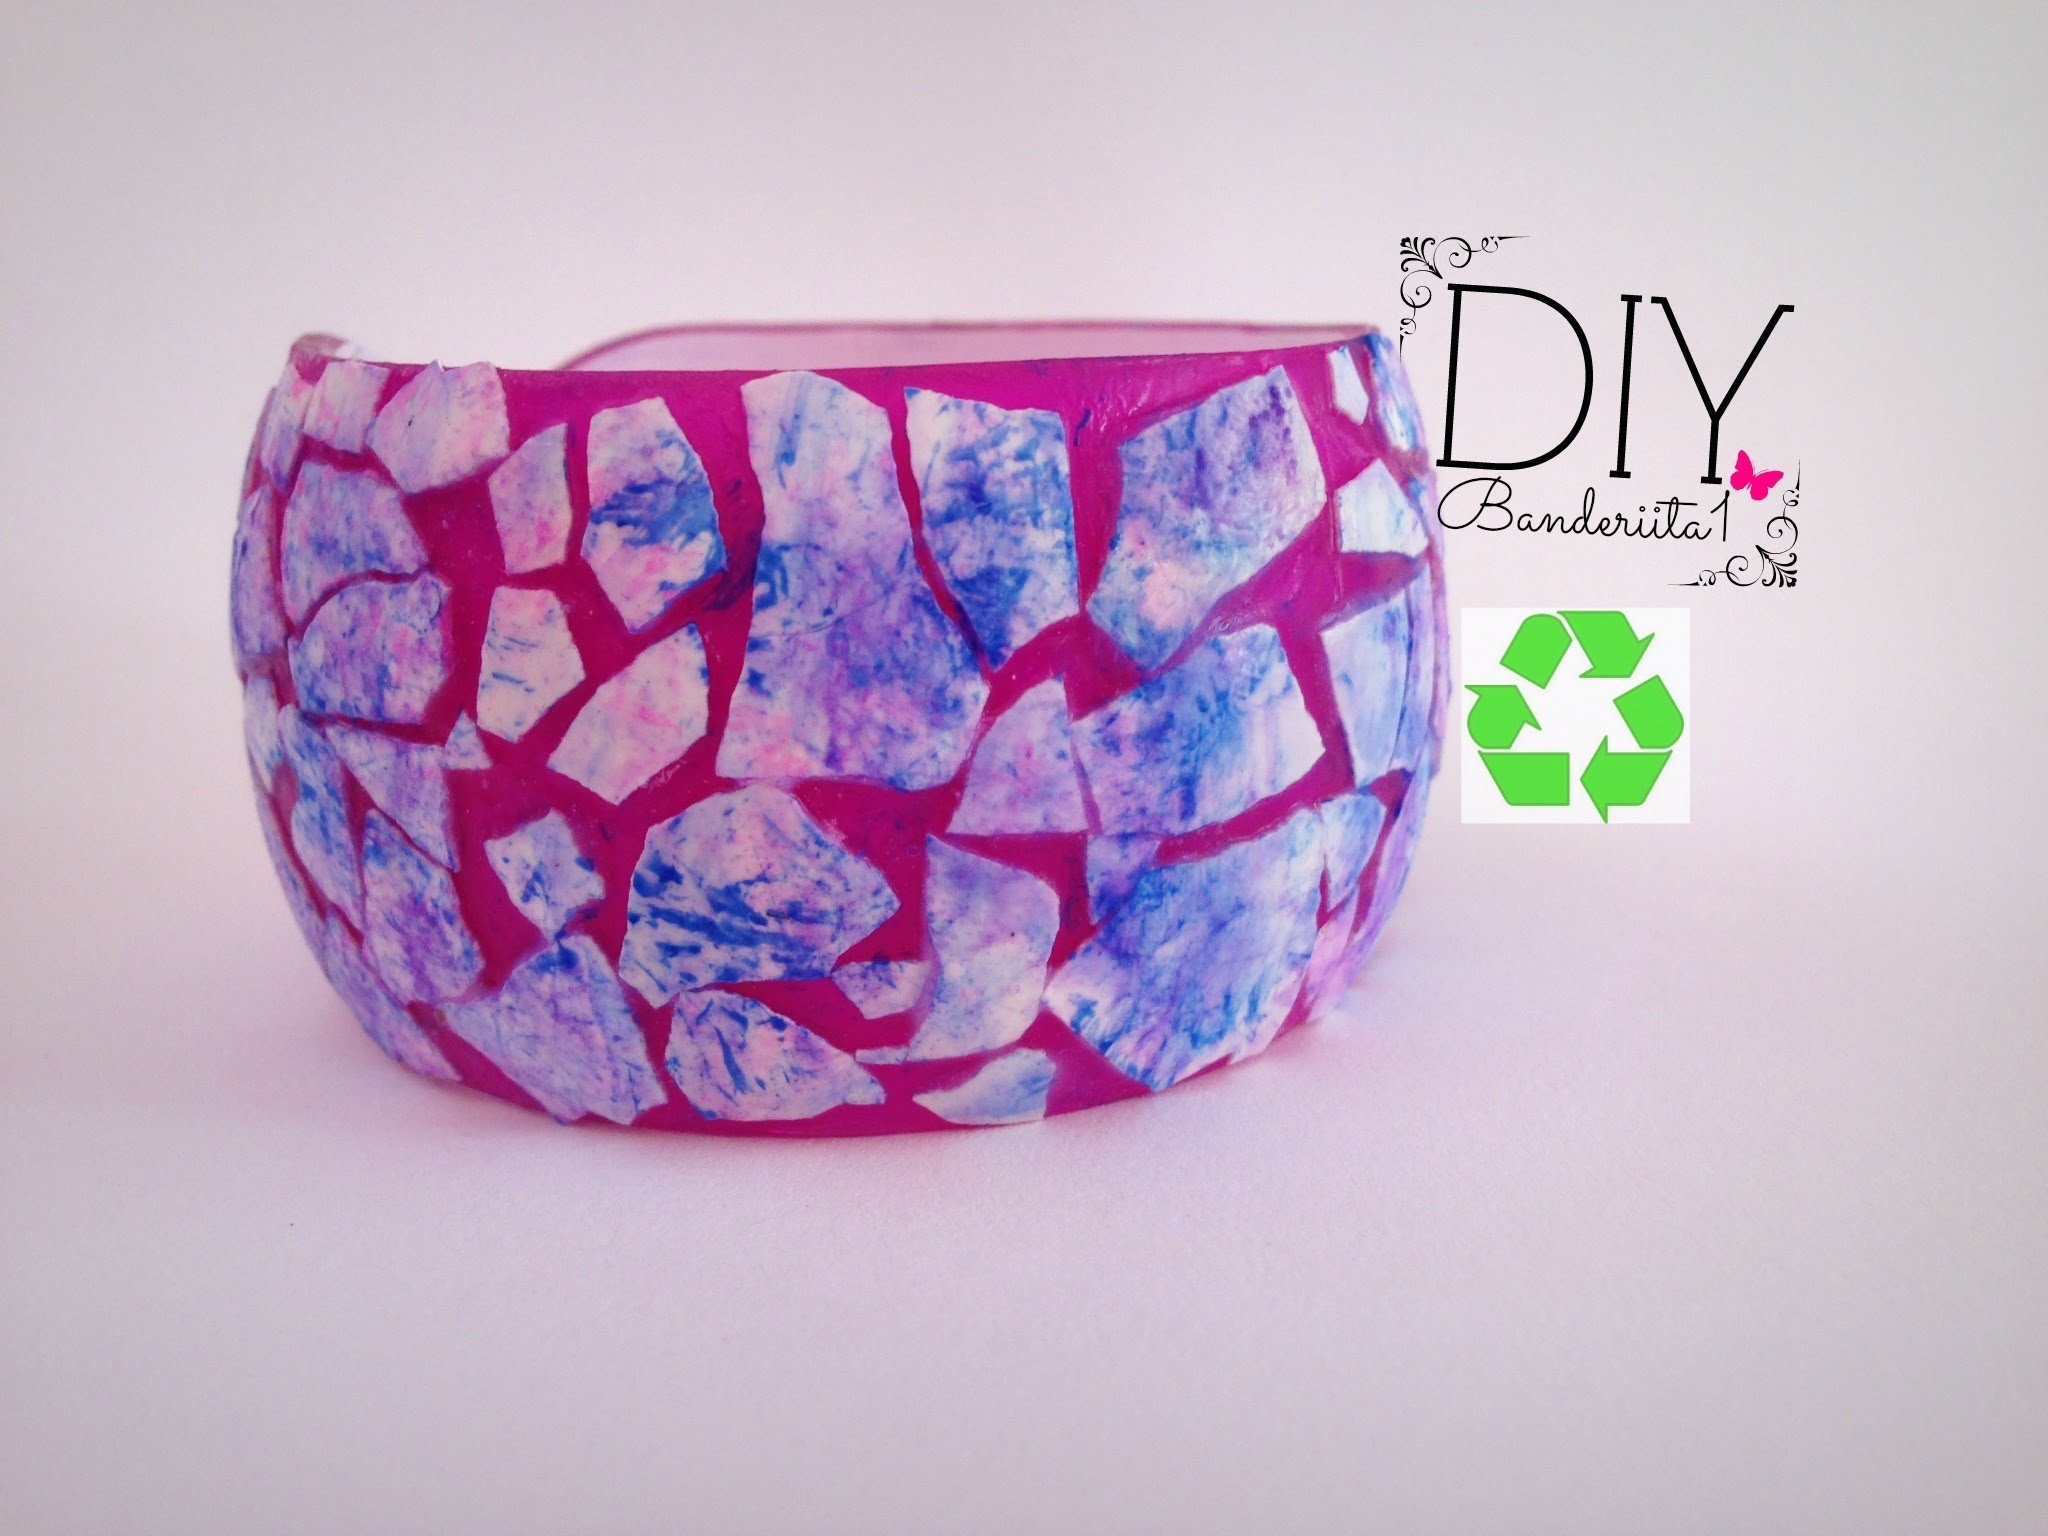 DIY Pulsera Reciclada. Recycled Bracelet Tutorial